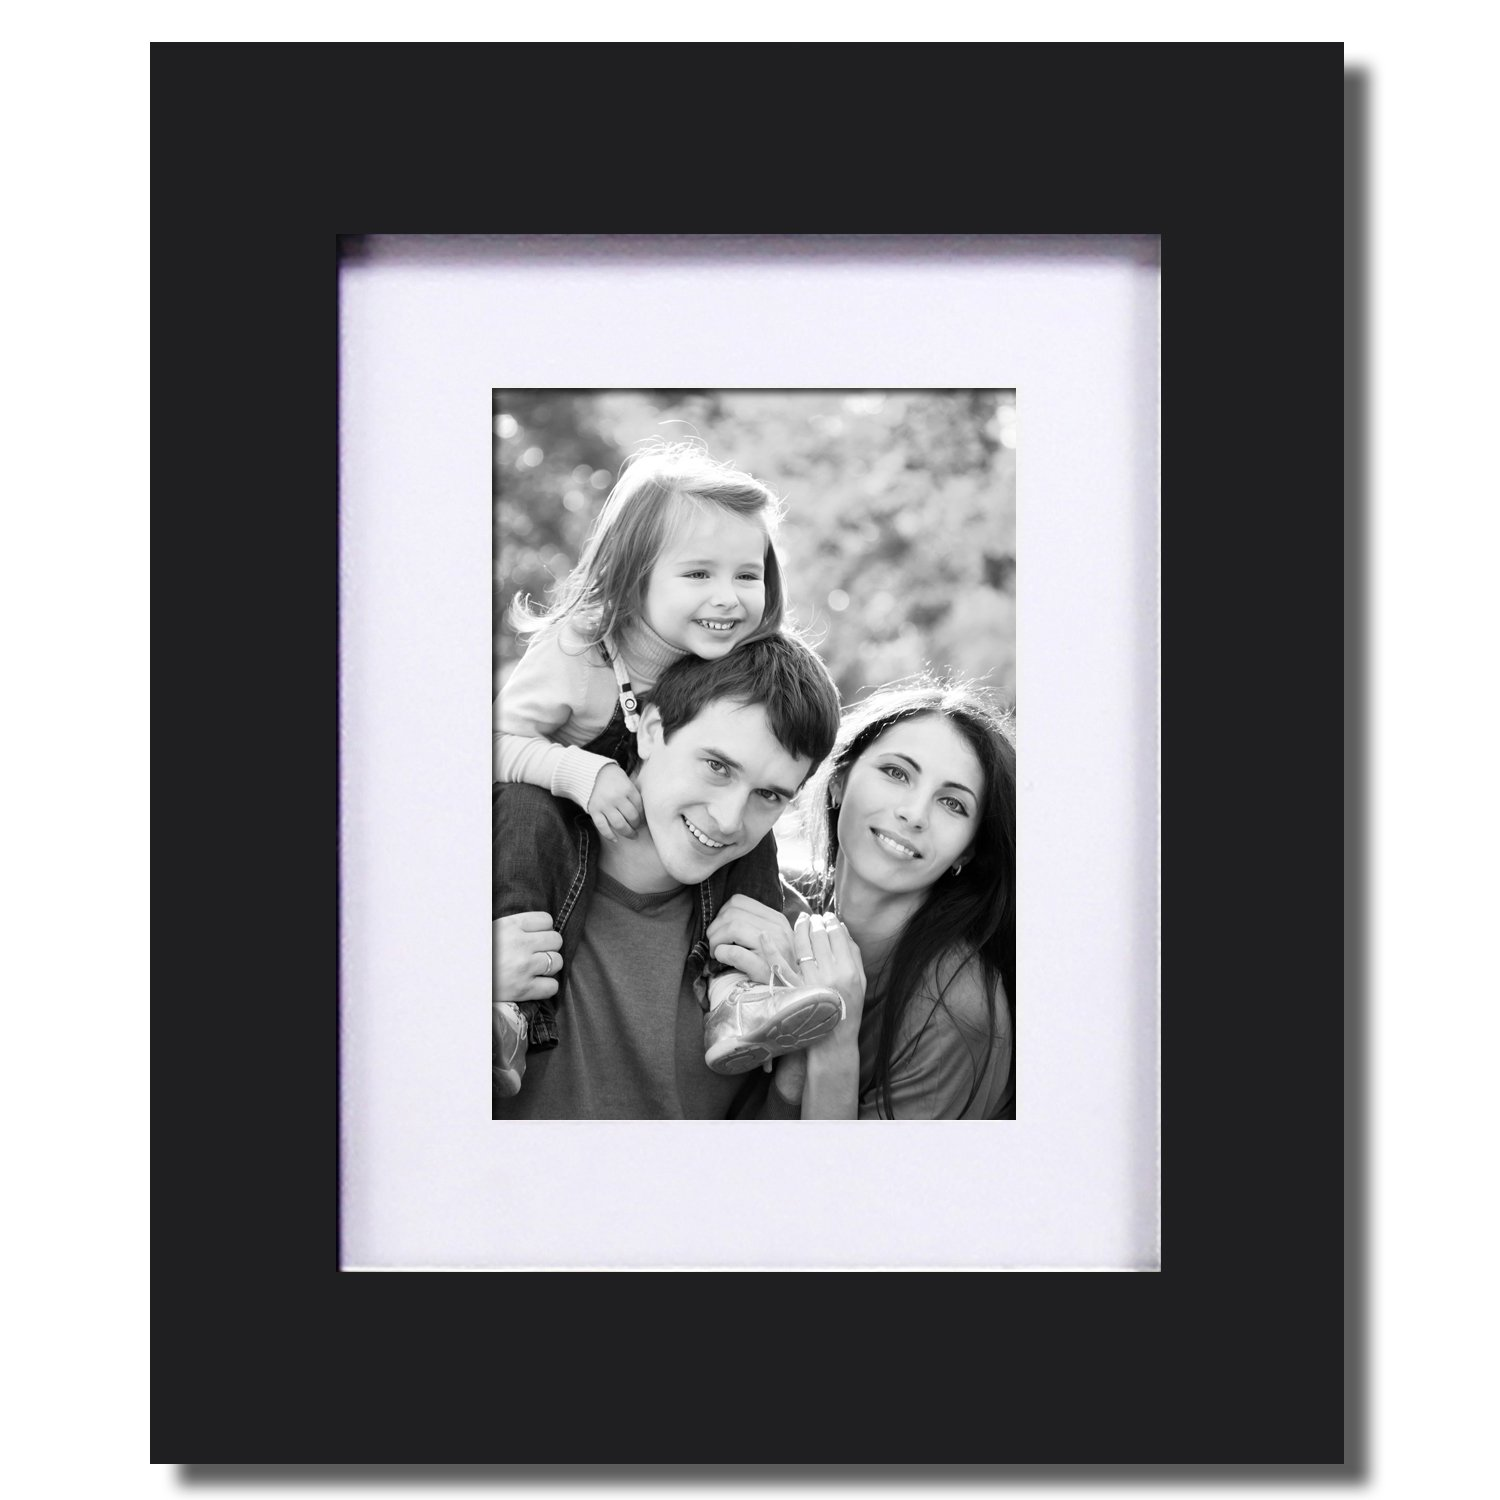 Amazoncom Adeco 8x10 Black Wood Decorative Picture Frame With